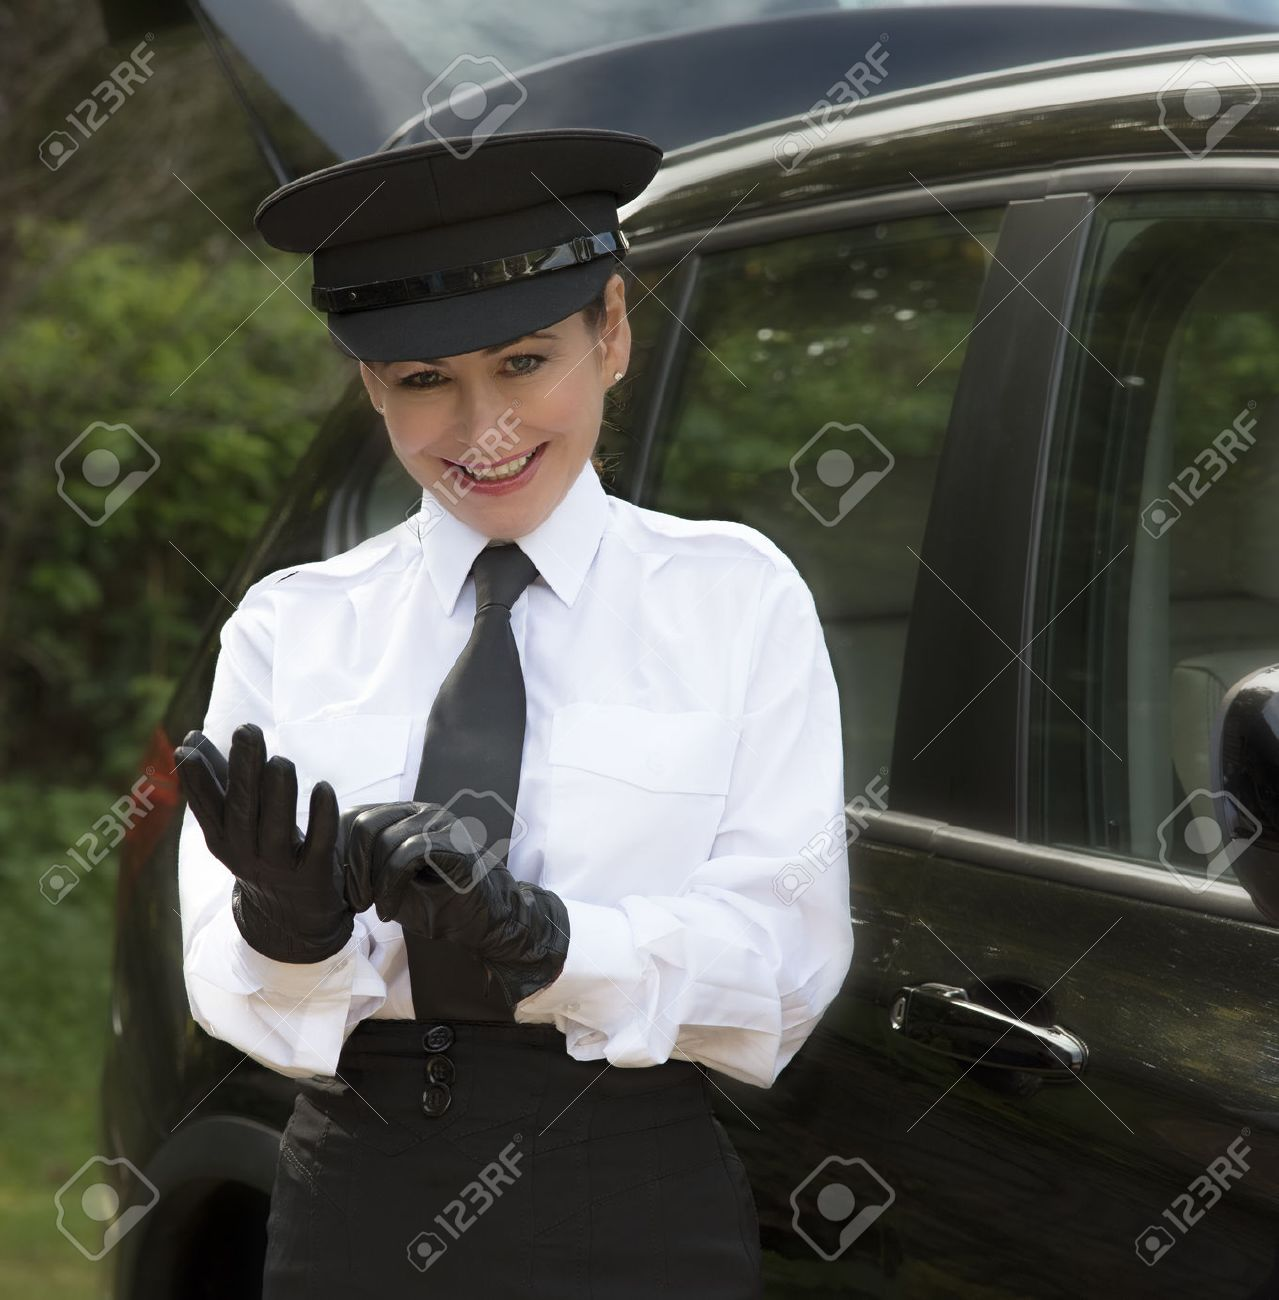 Stock photo woman chauffeur putting on her uniform black leather gloves